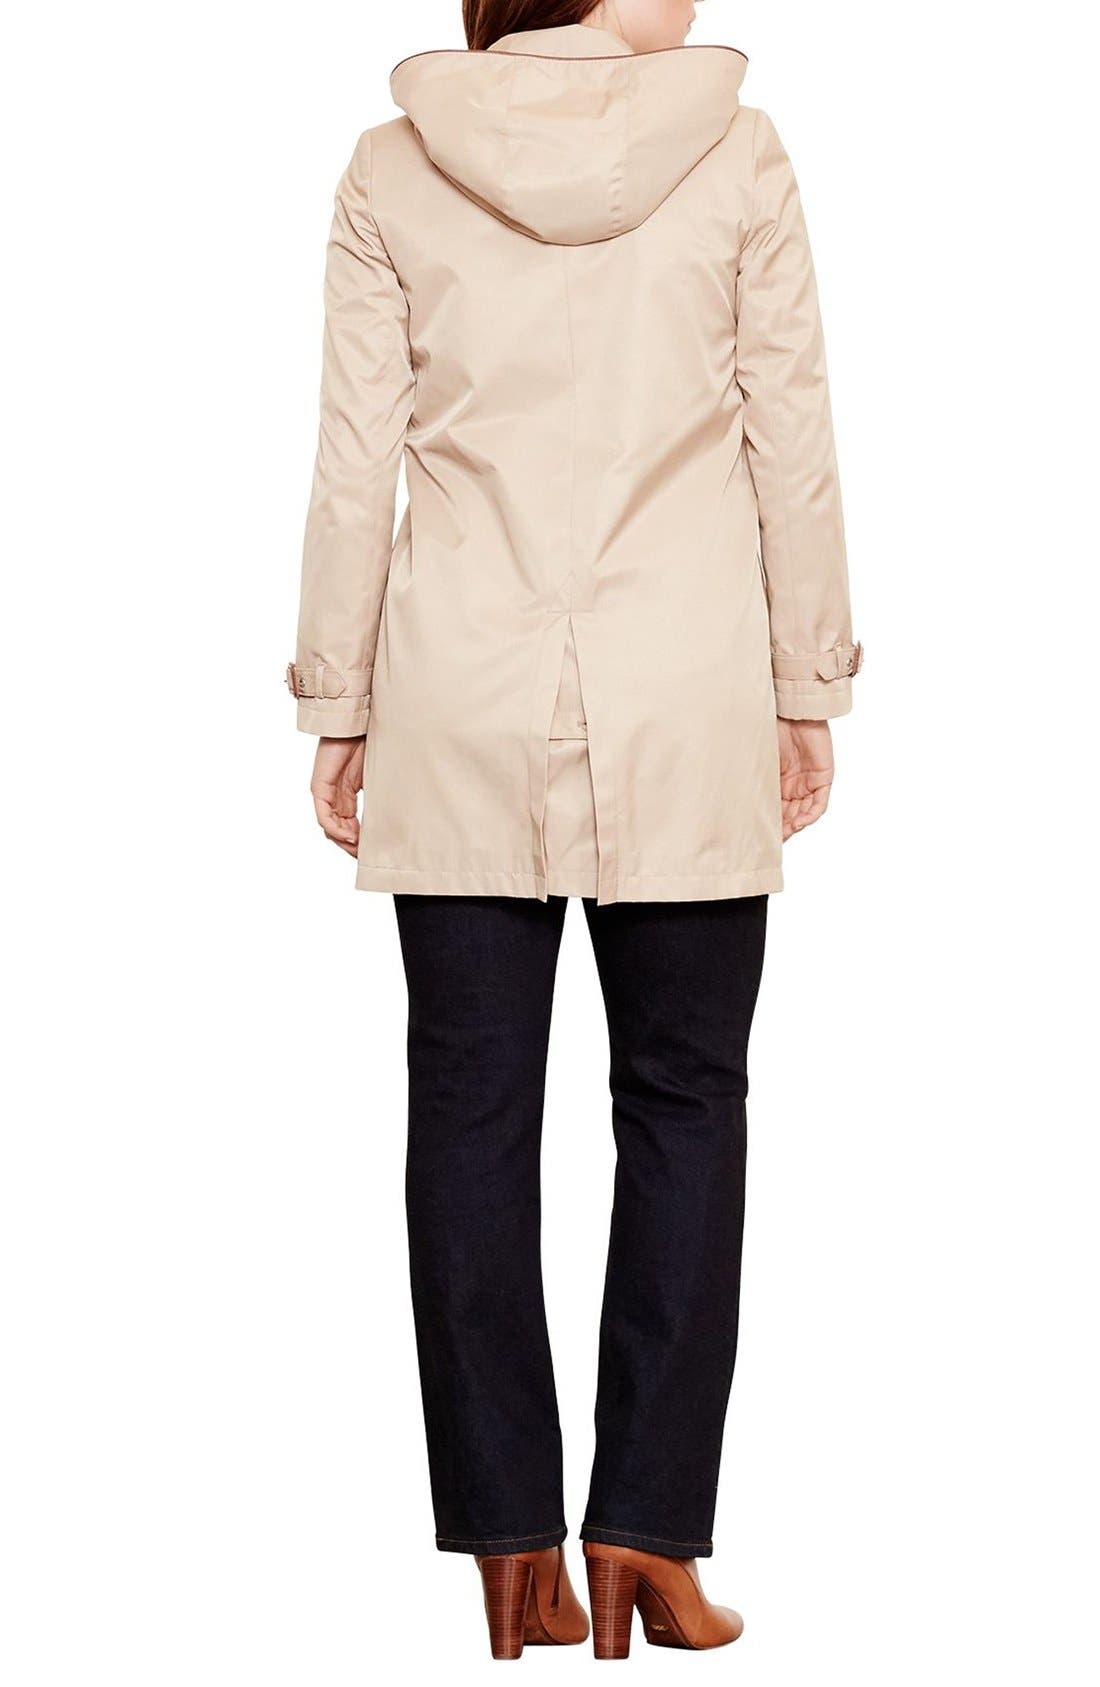 Alternate Image 2  - Lauren Ralph Lauren Faux Leather Trim Raincoat (Plus Size)